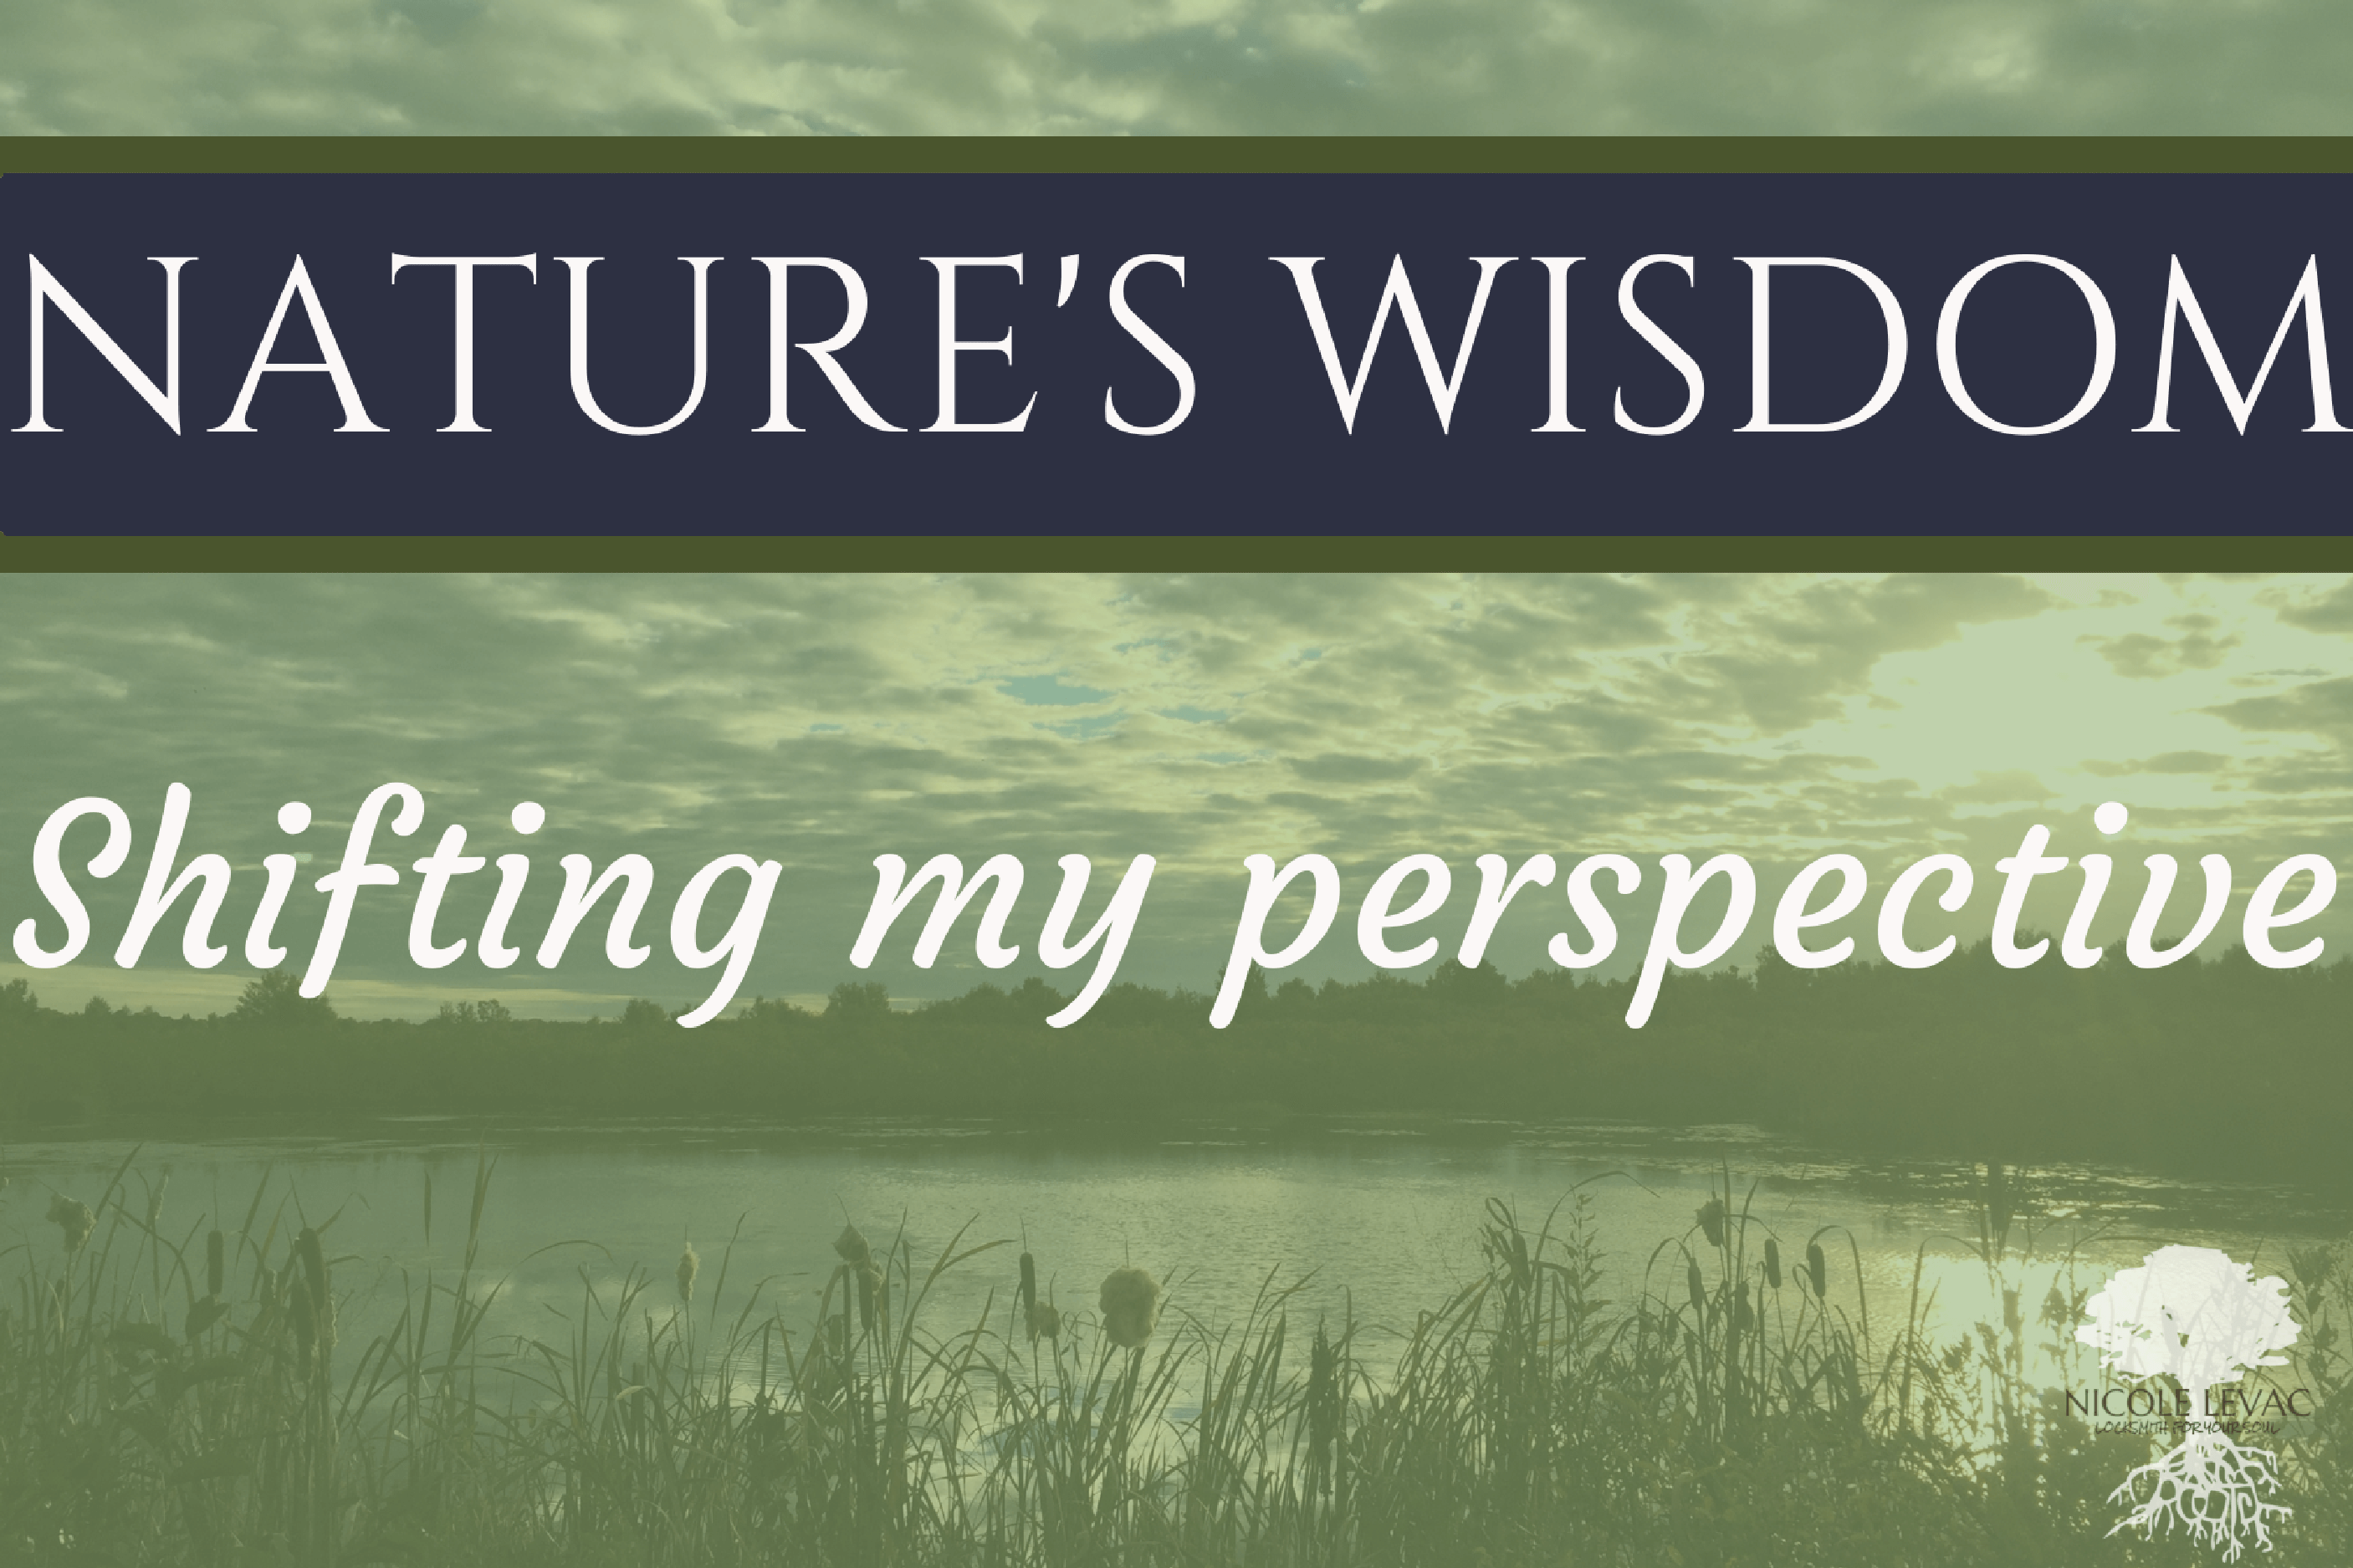 natures-wisdom-title-page-4-1